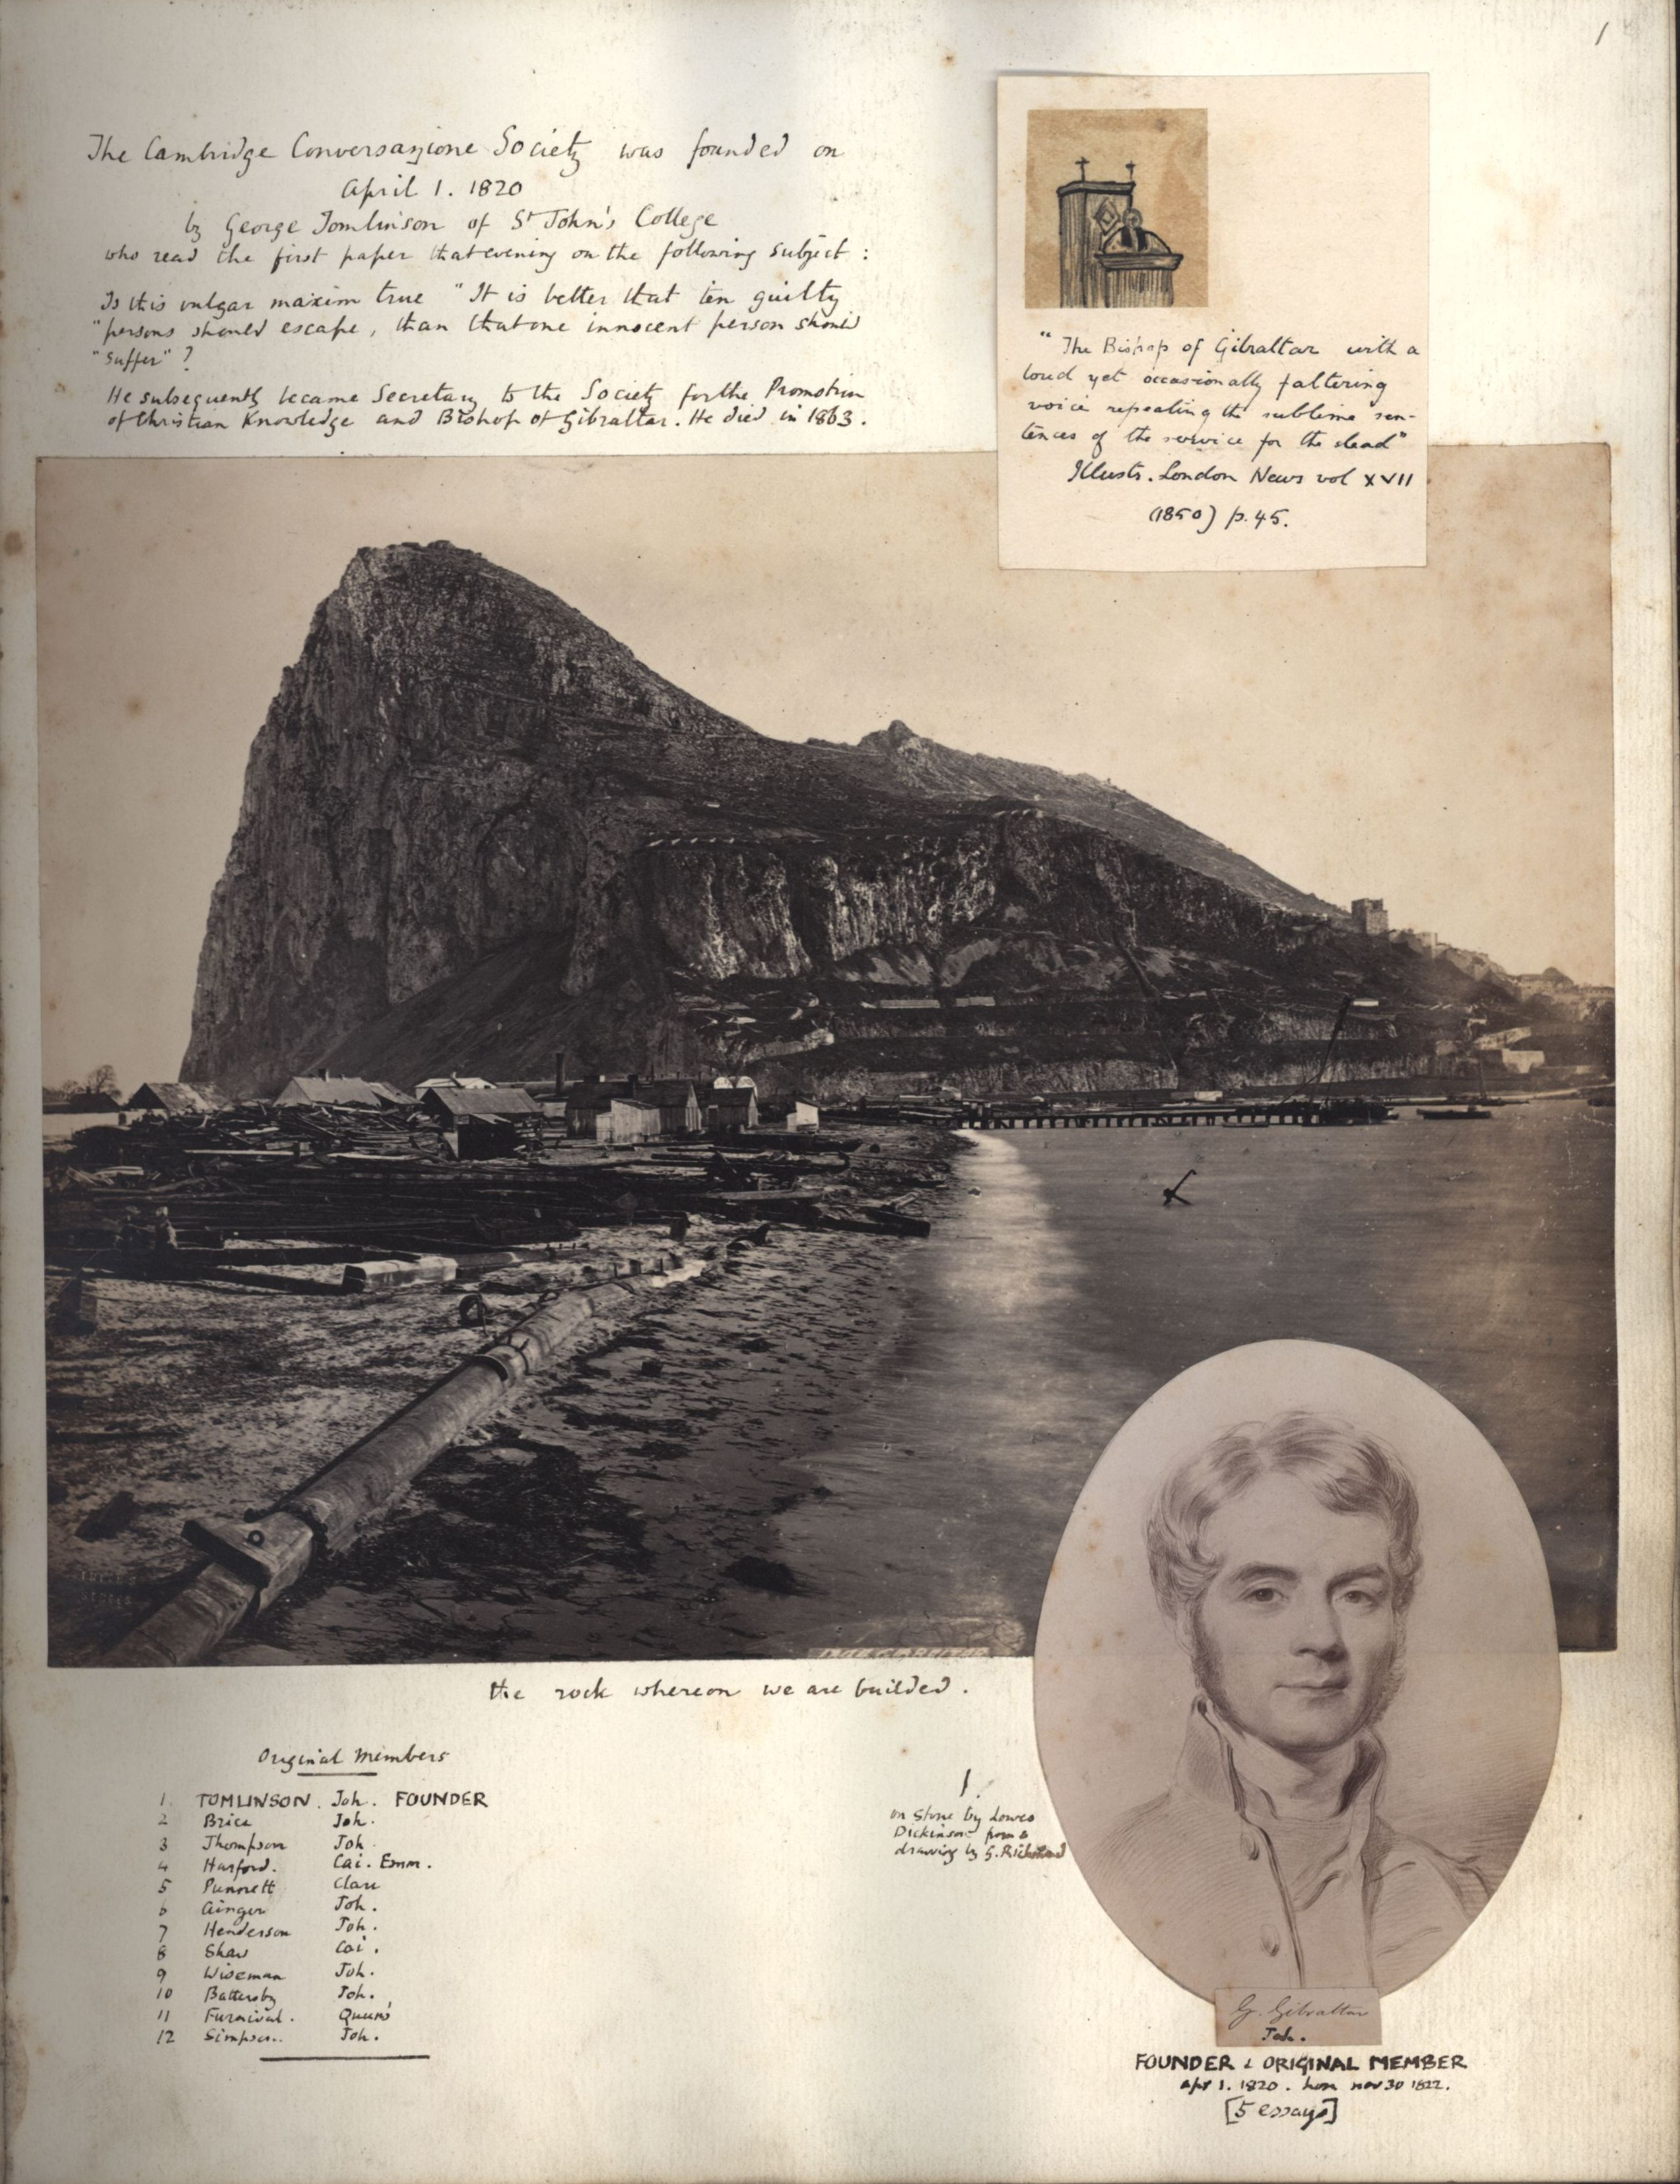 George Thomlinson in the Apostles photo book. [KCAS/39/4/1, p1]